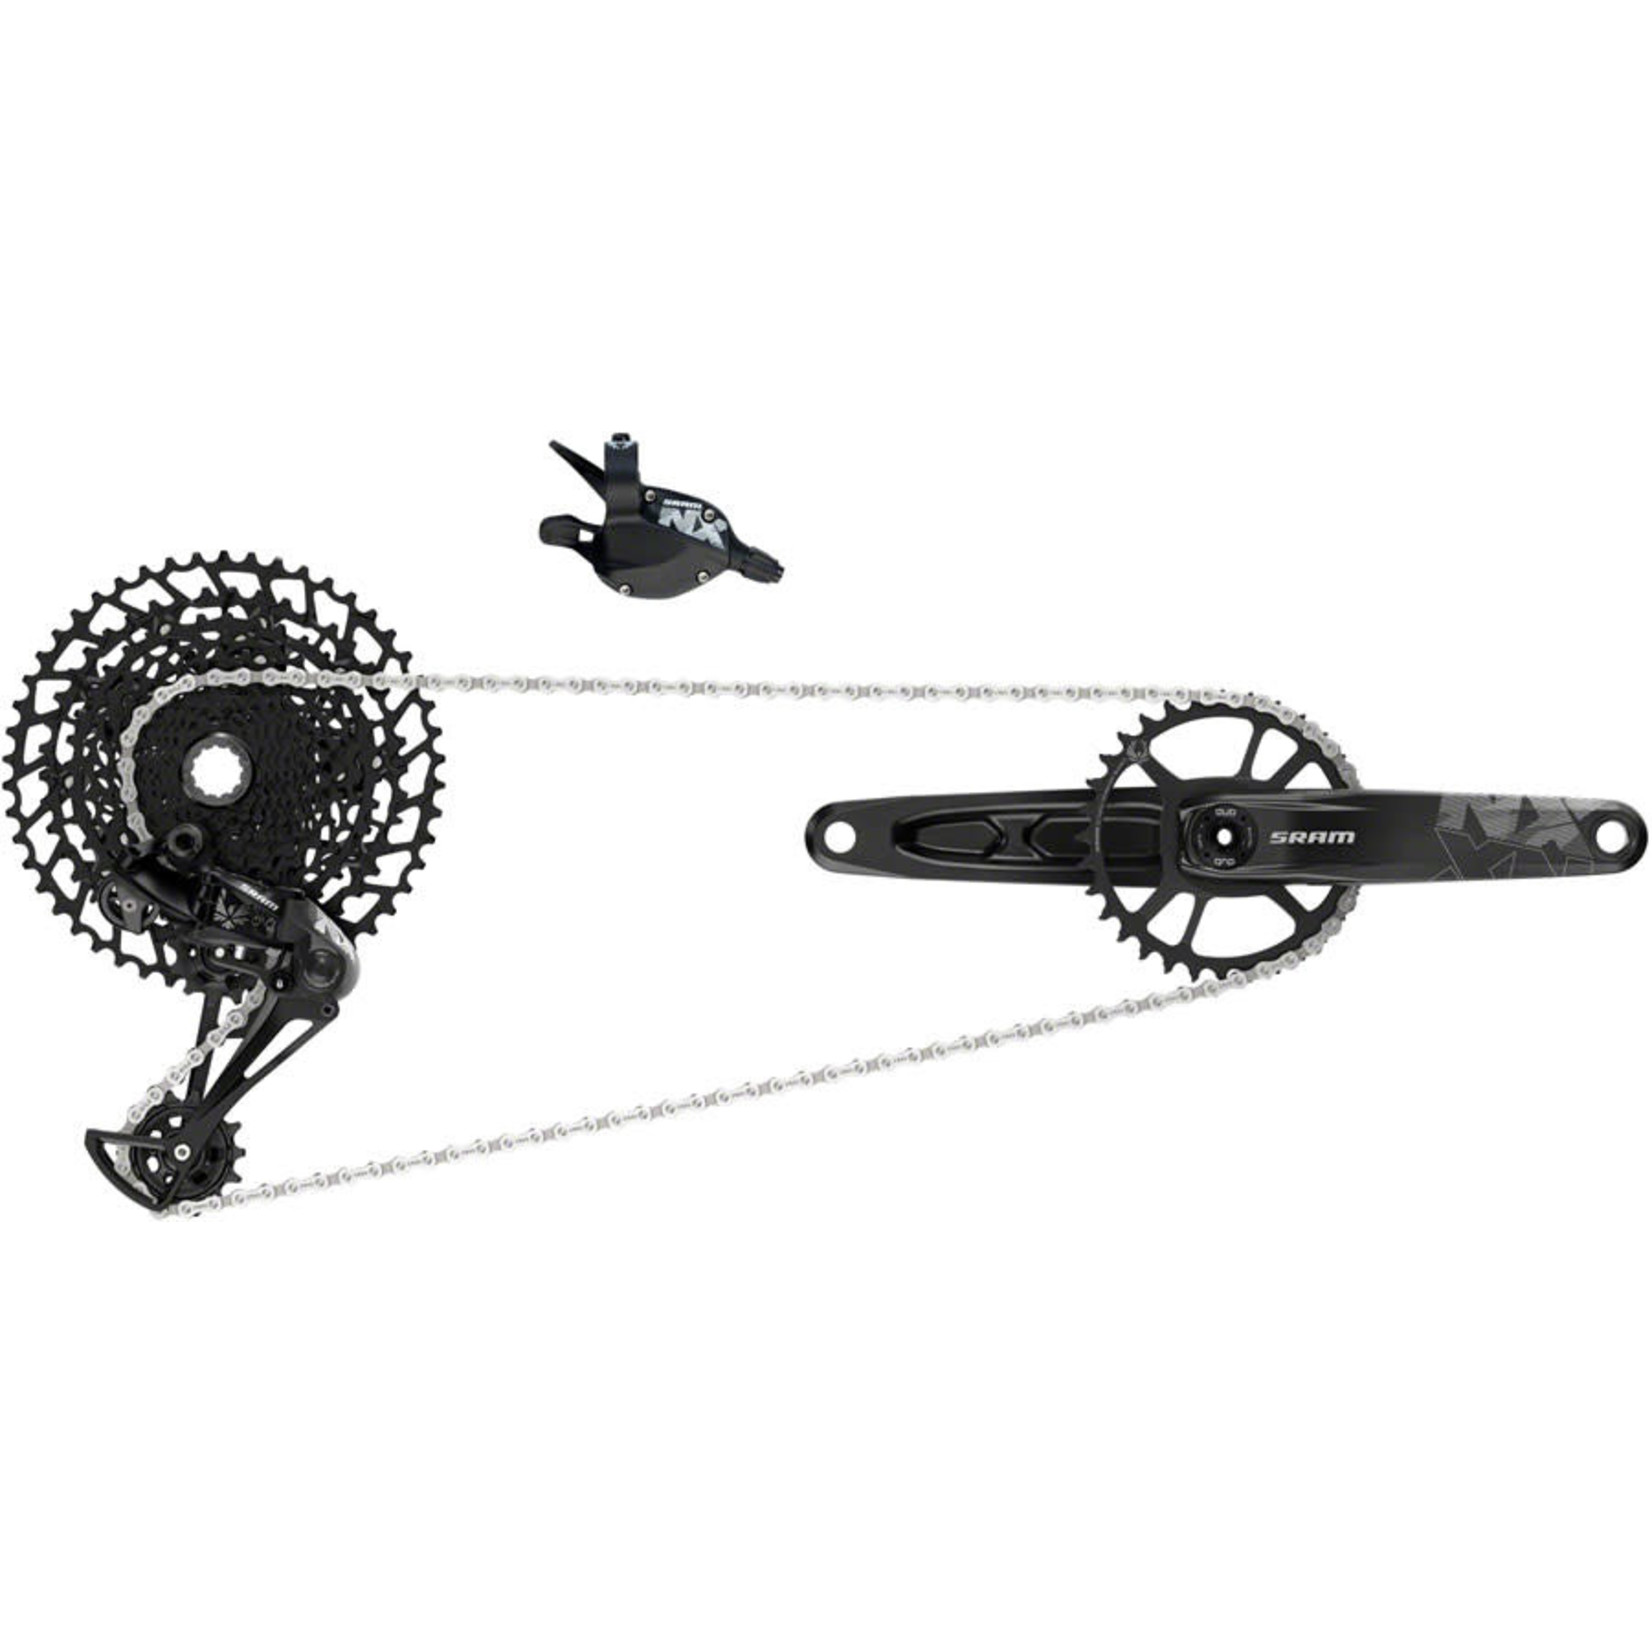 SRAM SRAM NX Eagle Groupset: 170mm 32 Tooth DUB Boost Crank, Rear Derailleur, 11-50 12-Speed Cassette, Trigger Shifter, and Chain